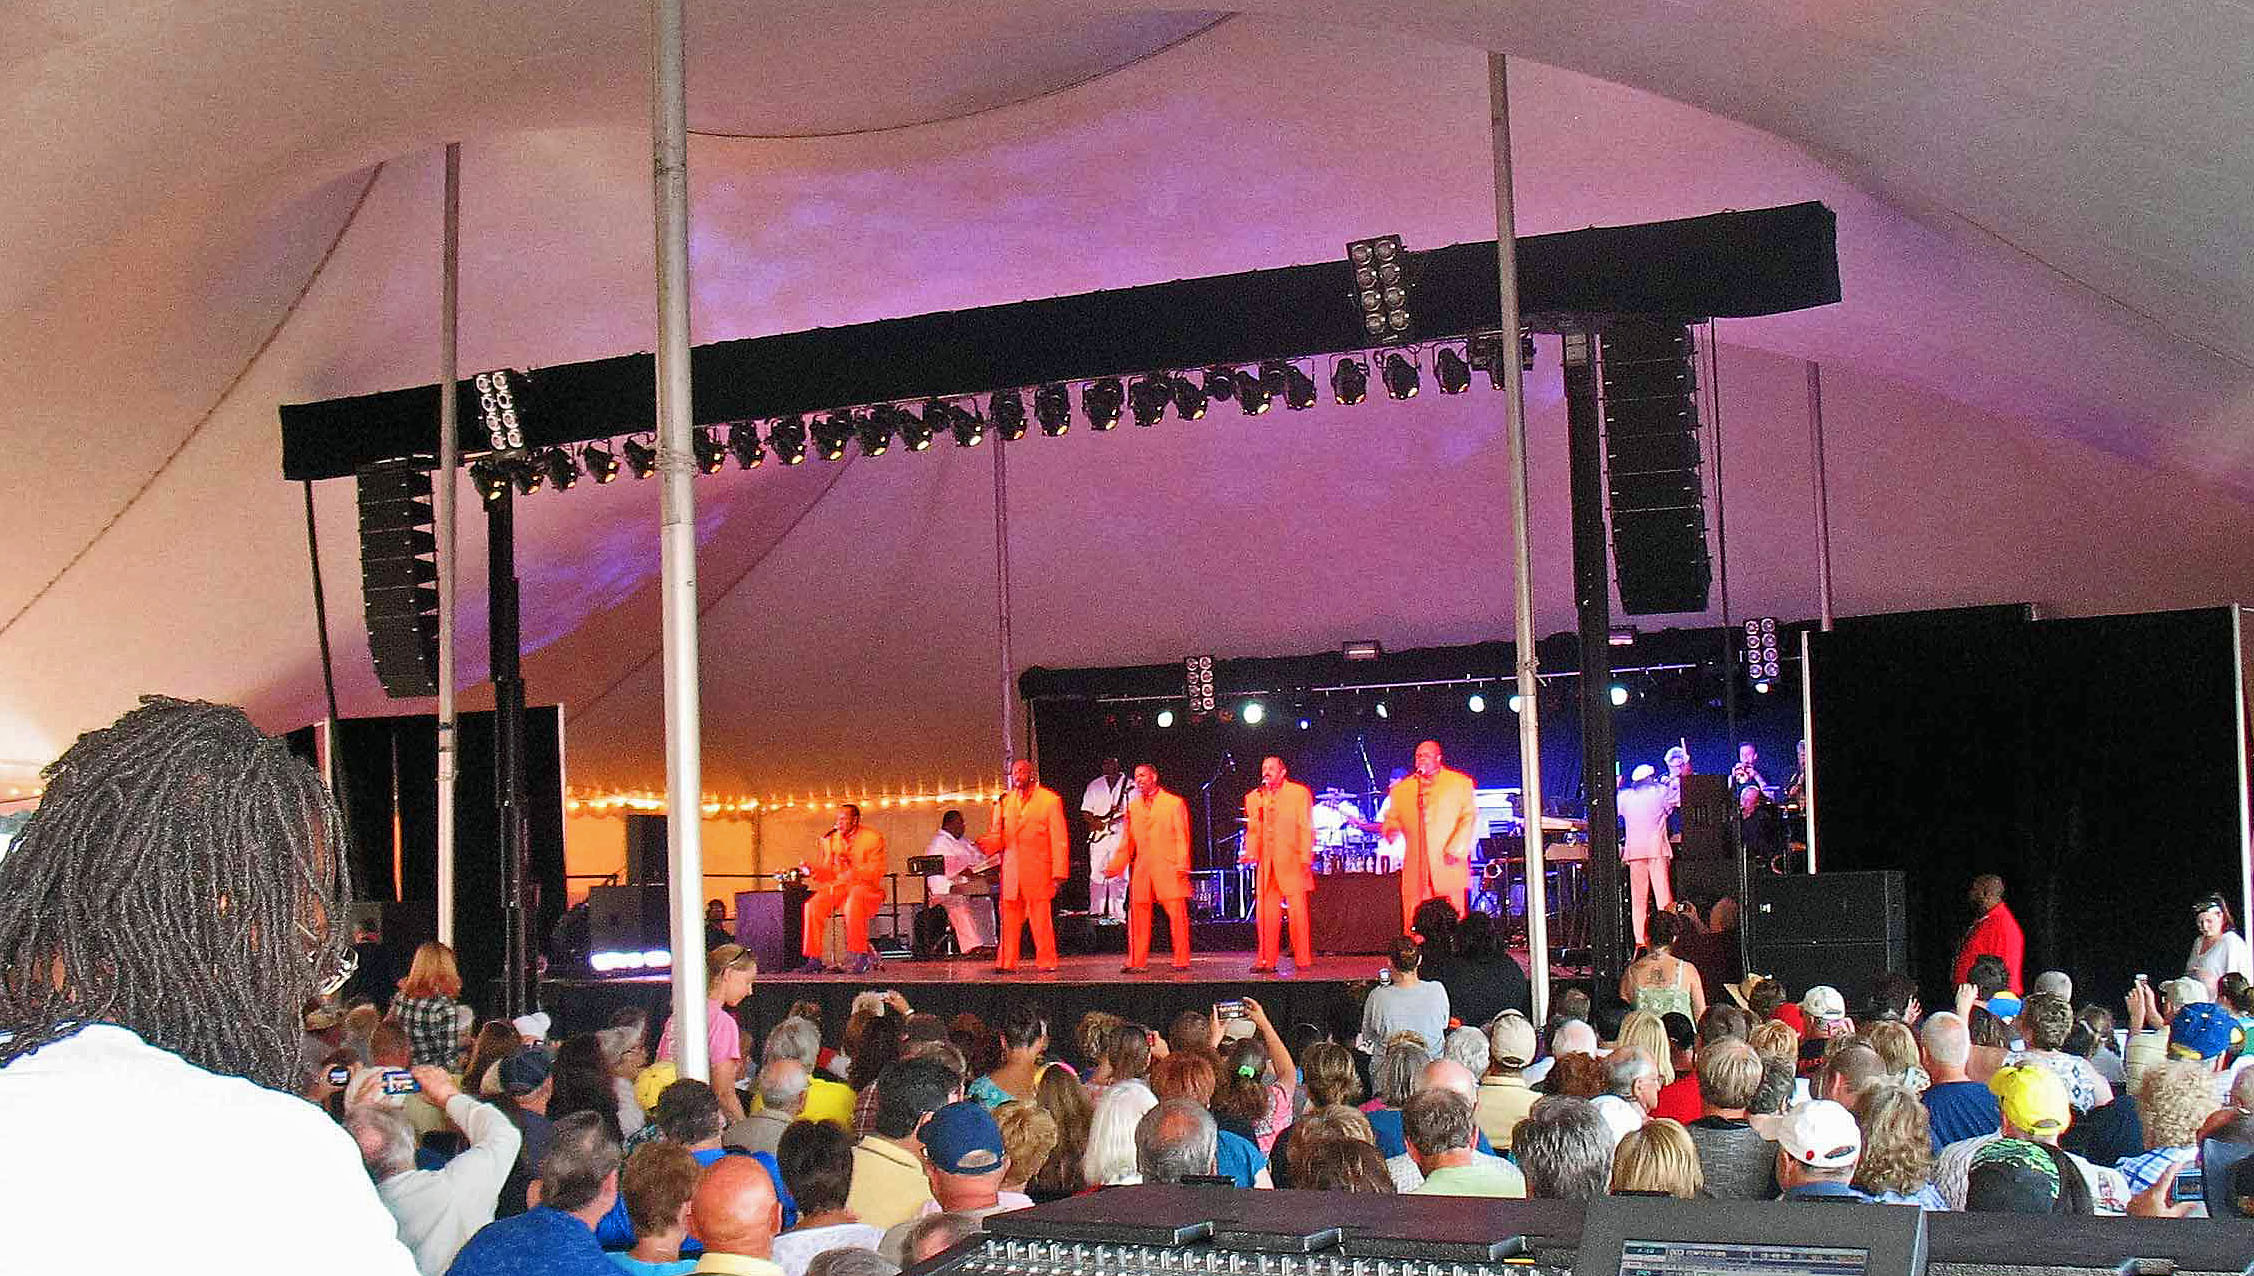 Hormel event with The Temptations